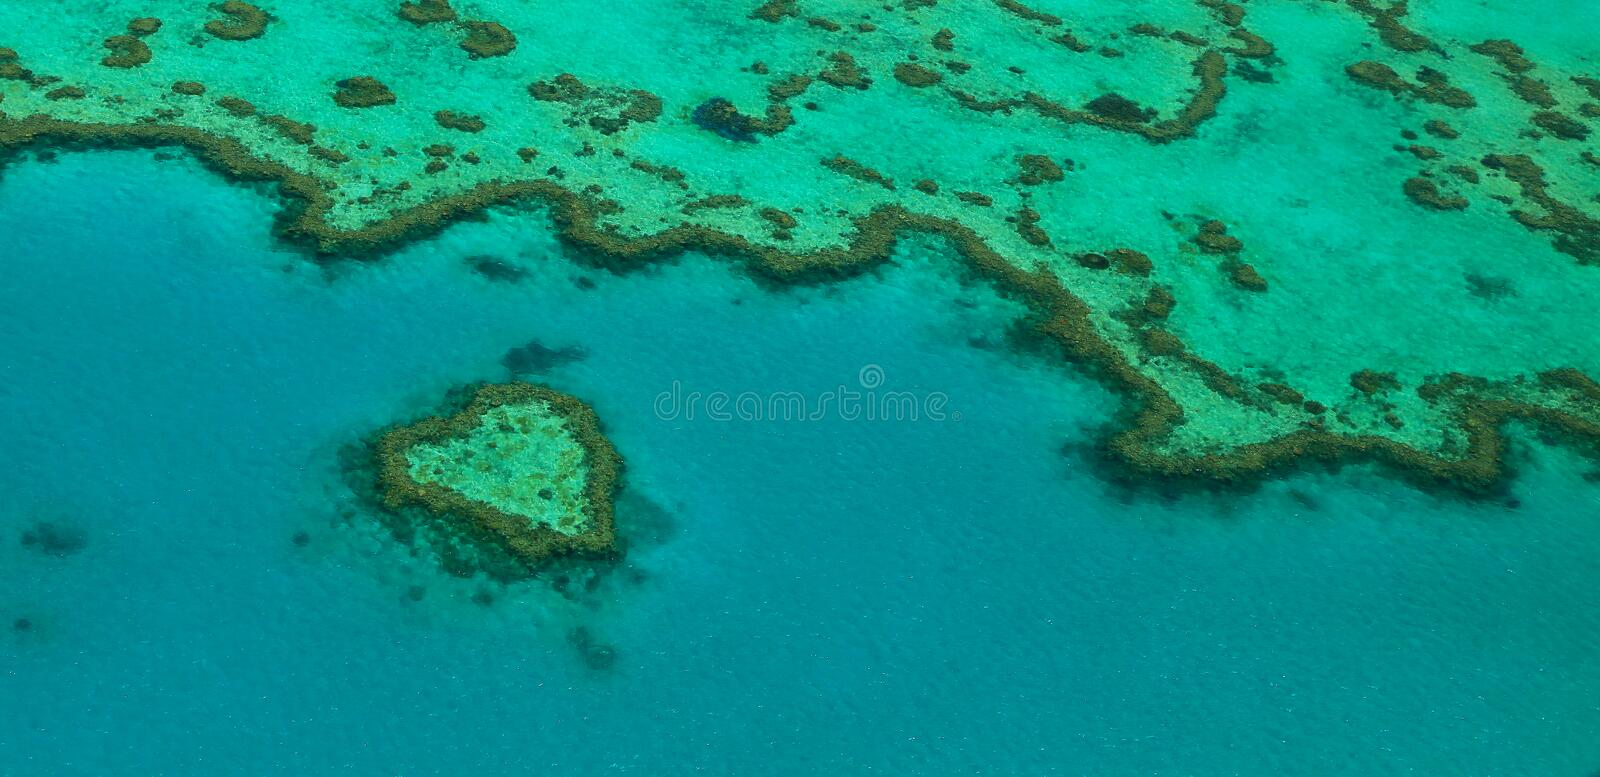 Download Heart Reef stock image. Image of queensland, paradise - 17064635